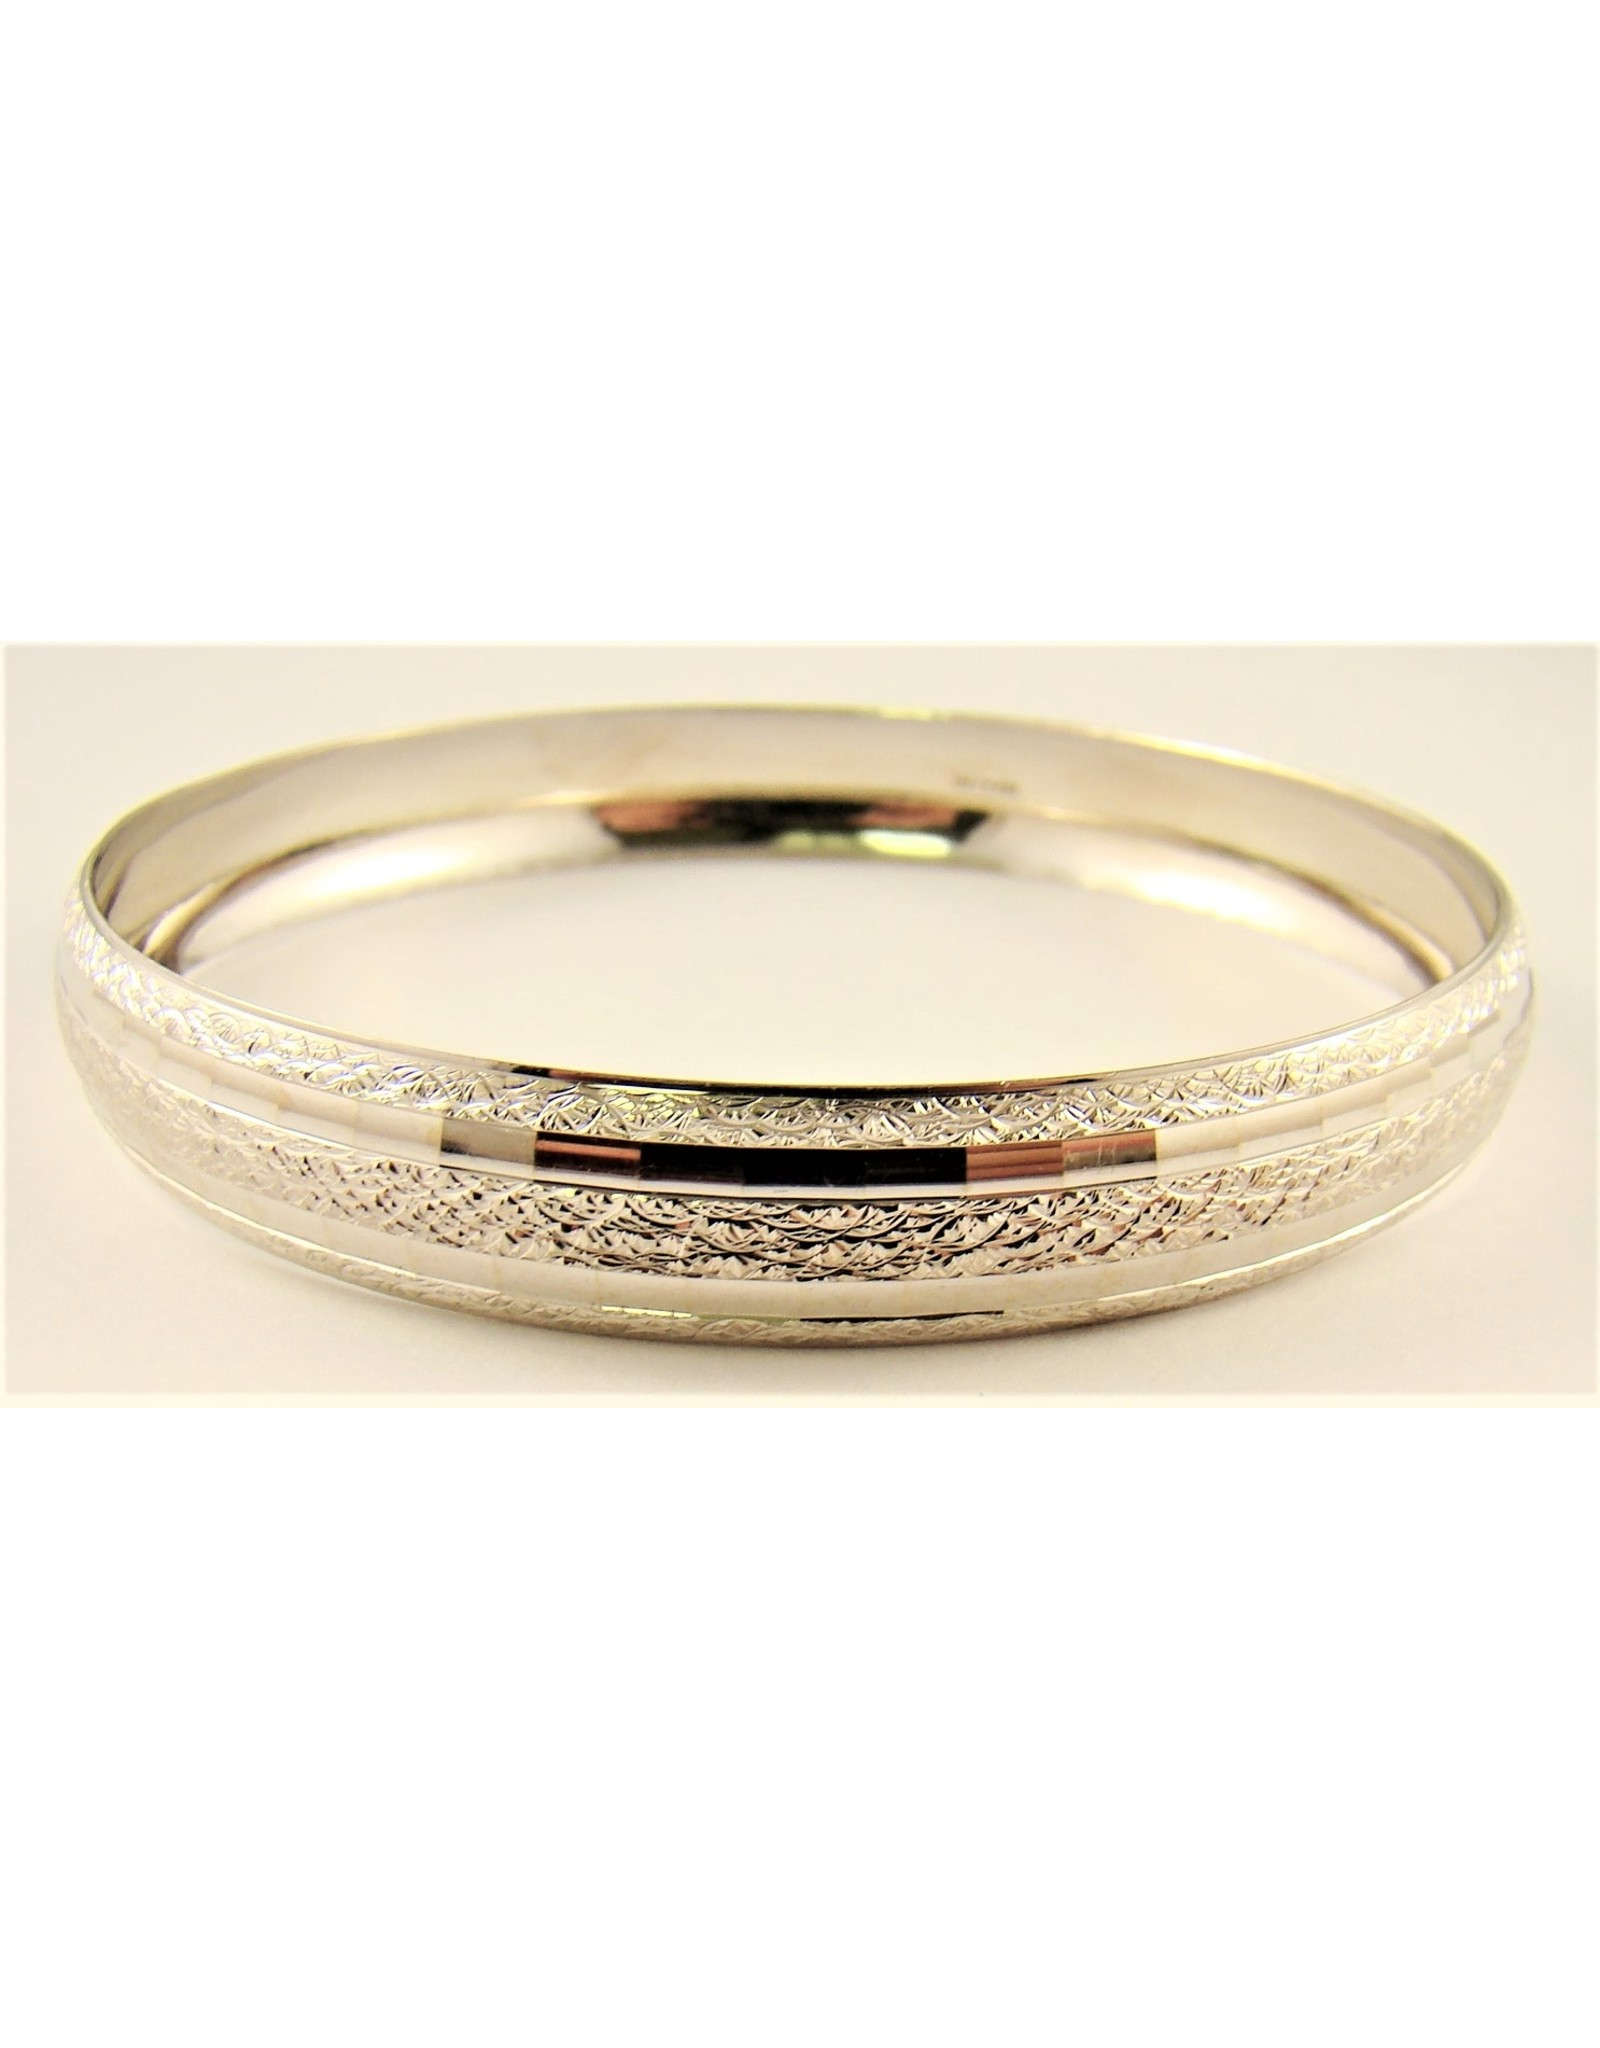 10.3mm Domed Round Bangle 10KW